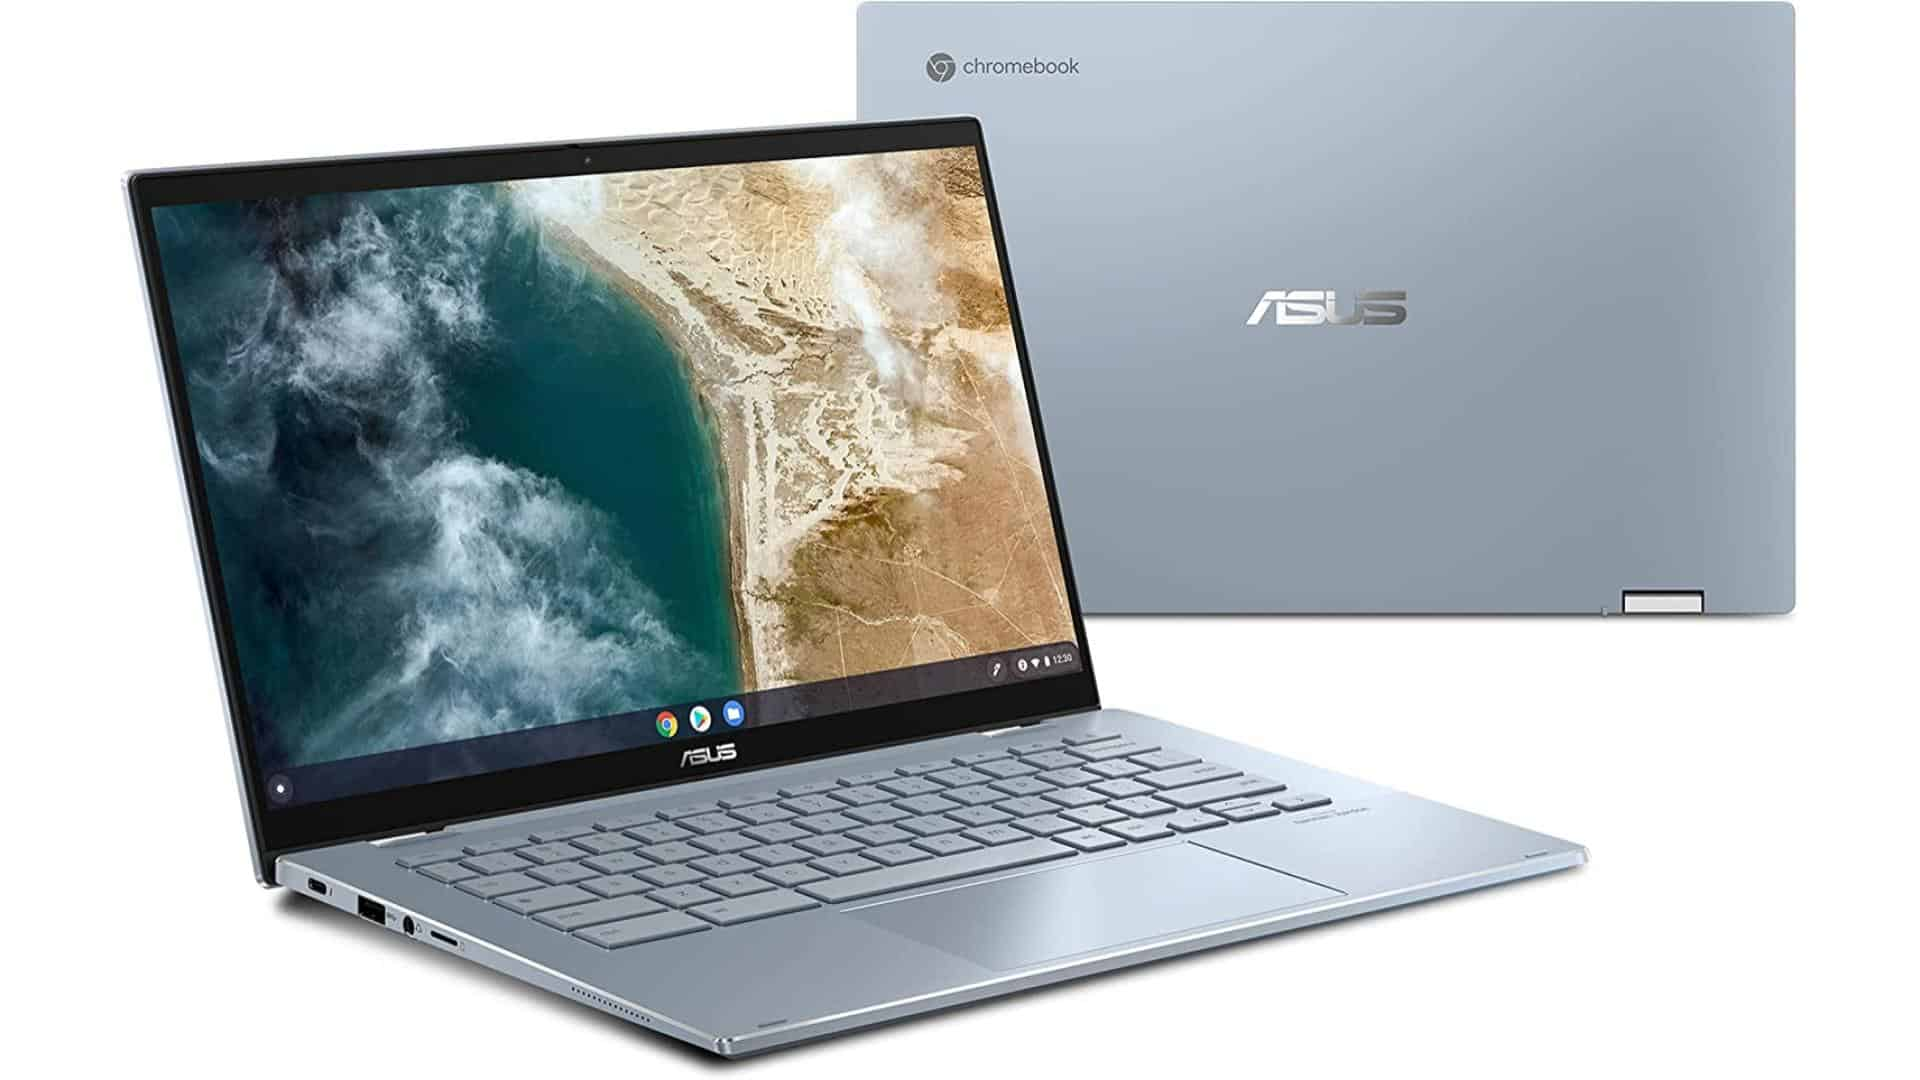 ASUS Chromebook Flip CX5 presser for laptops holiday gift guide 2021